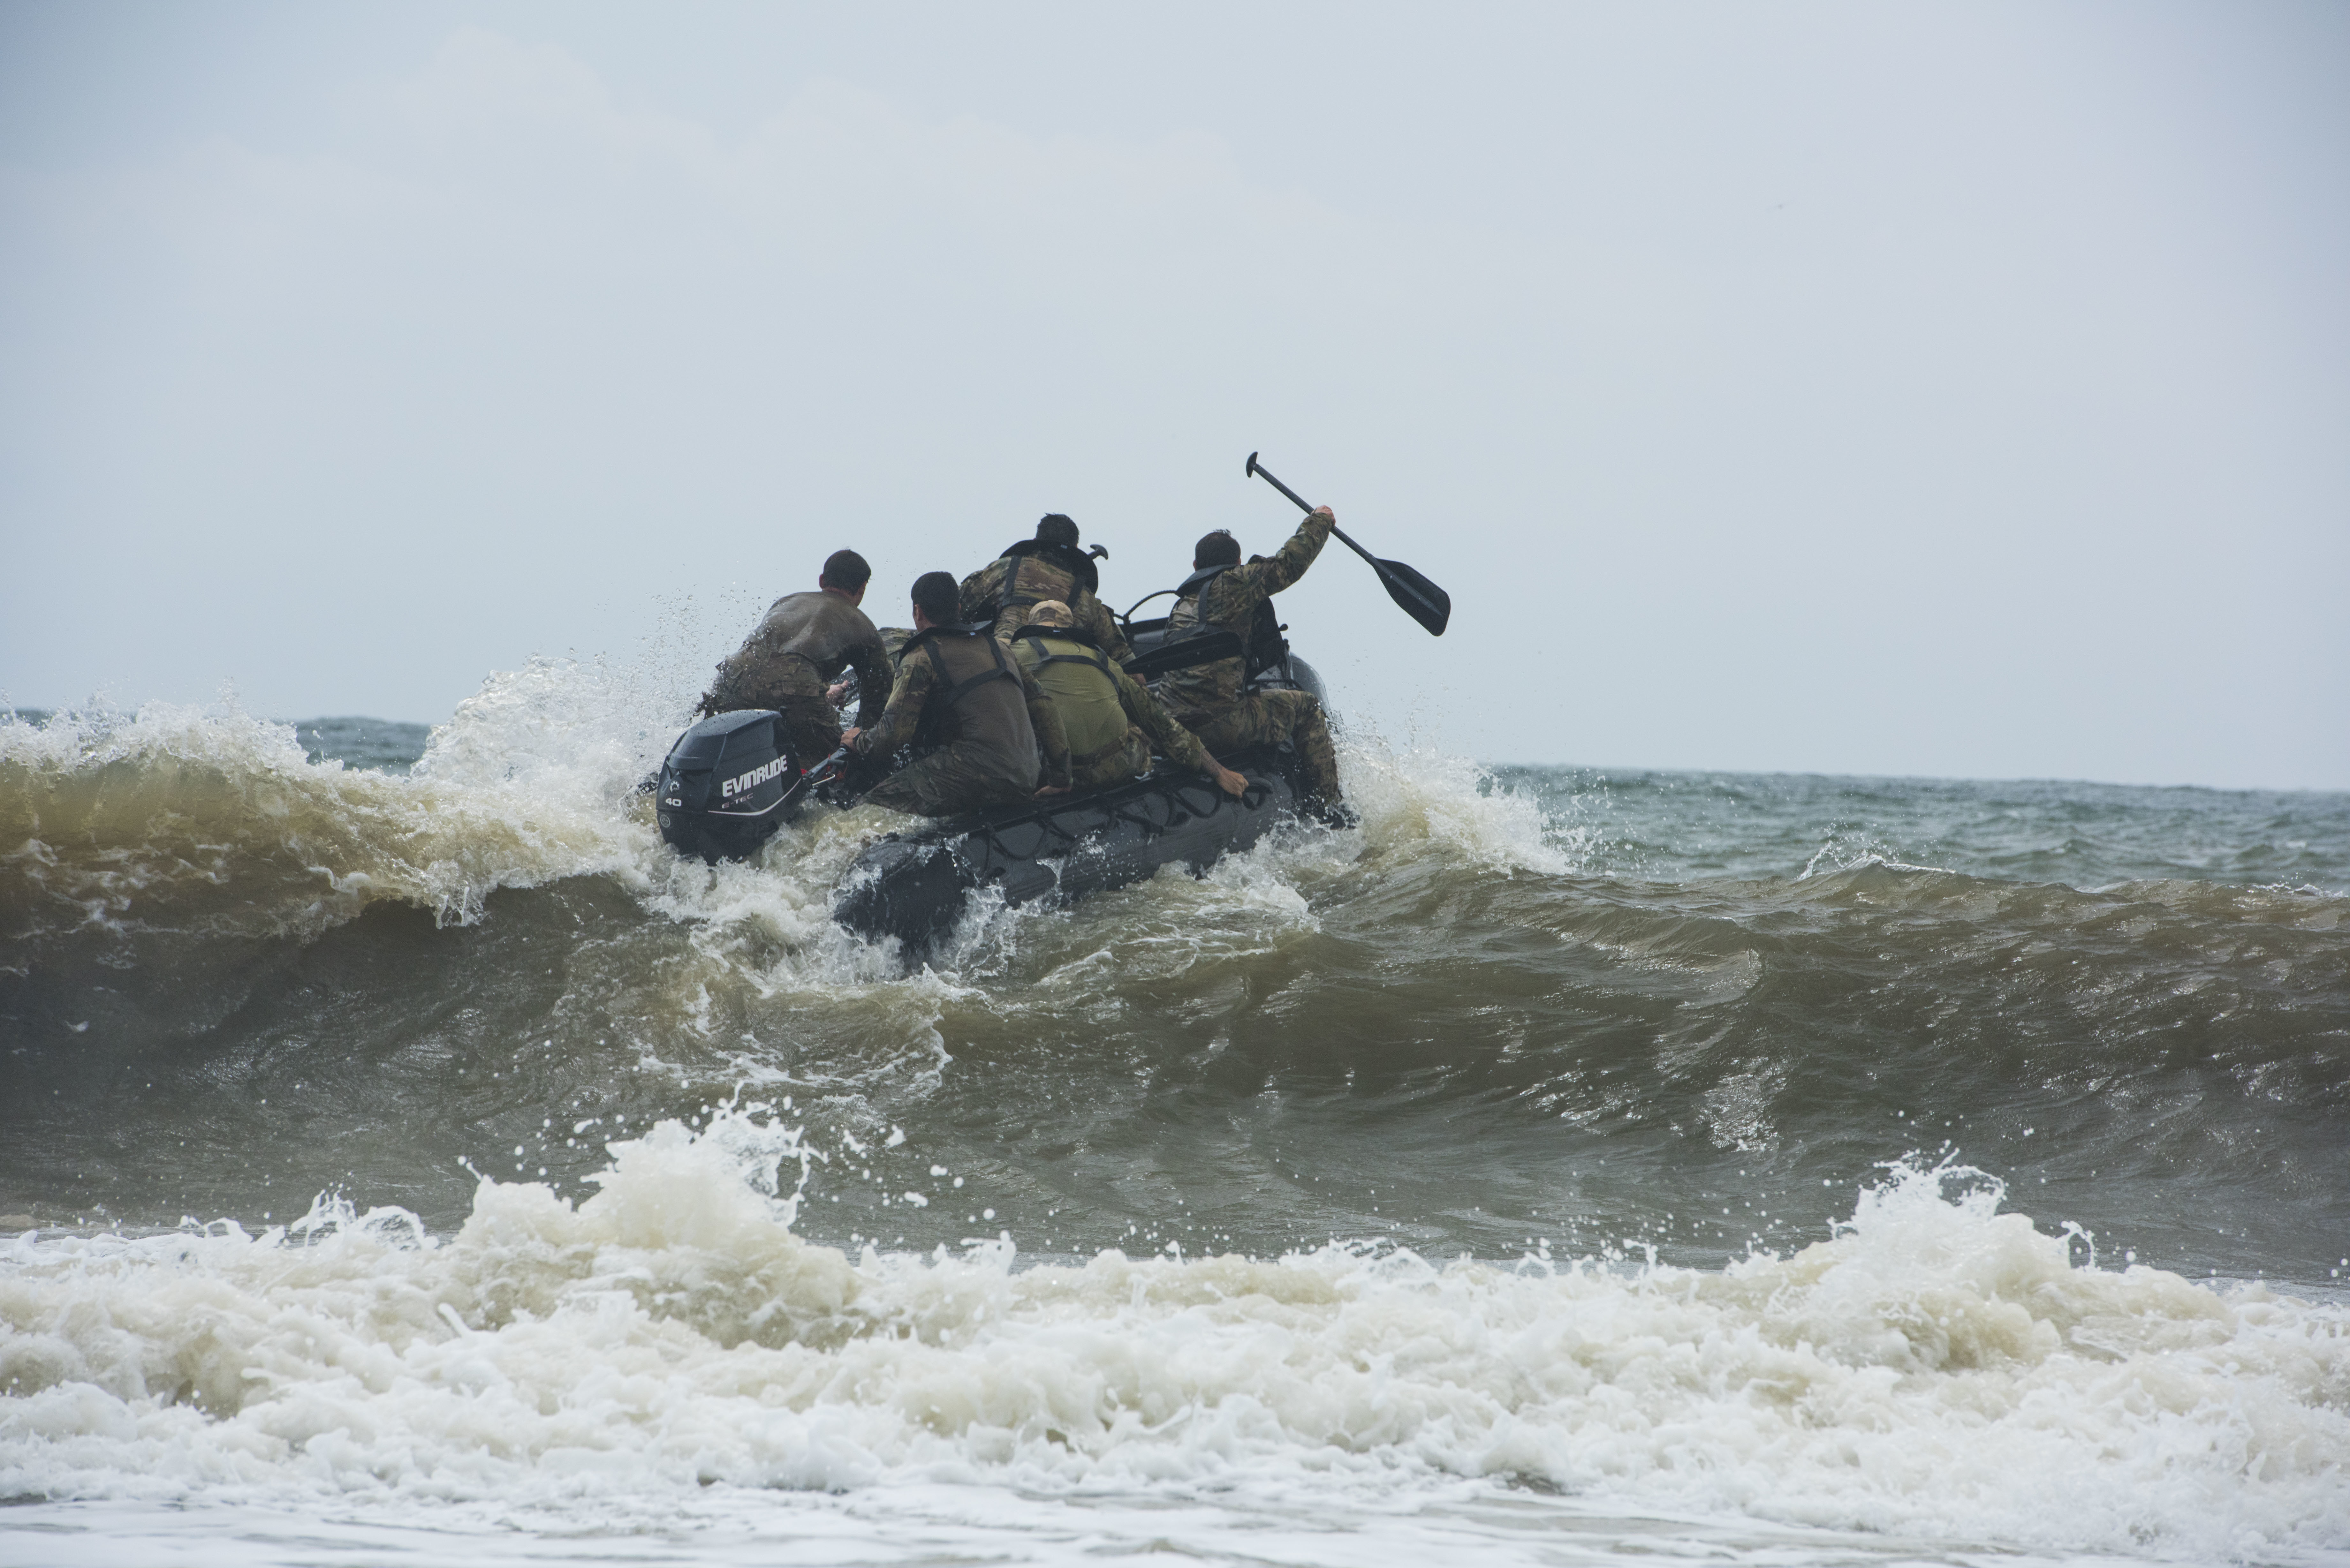 Heavy seas don't stop National Guard SF combat divers